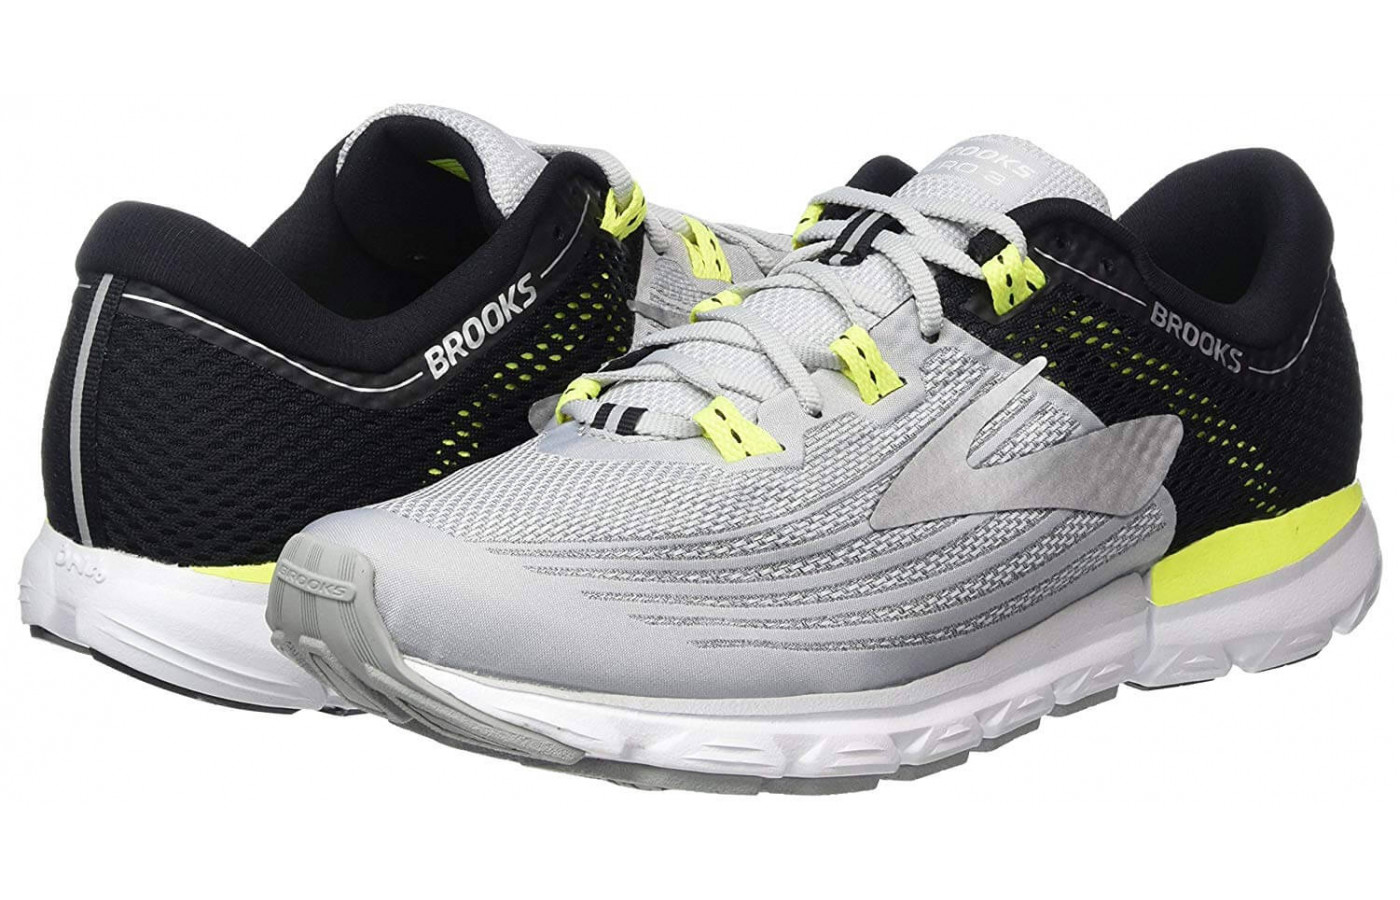 Brooks Neuro 3 Pair